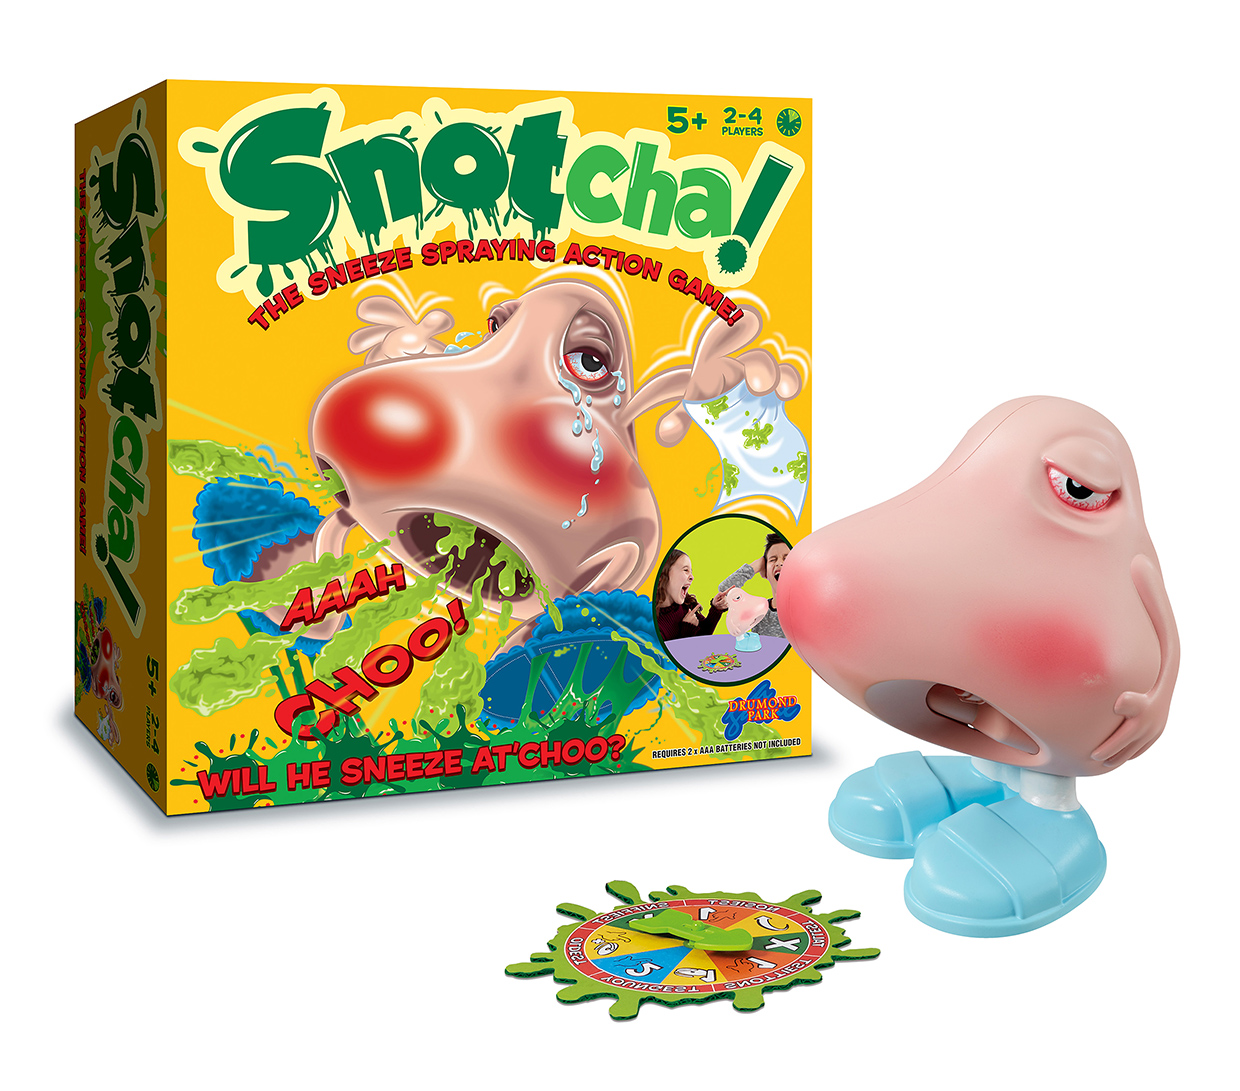 Snotcha! Game from Drumond park -Review and giveaway-